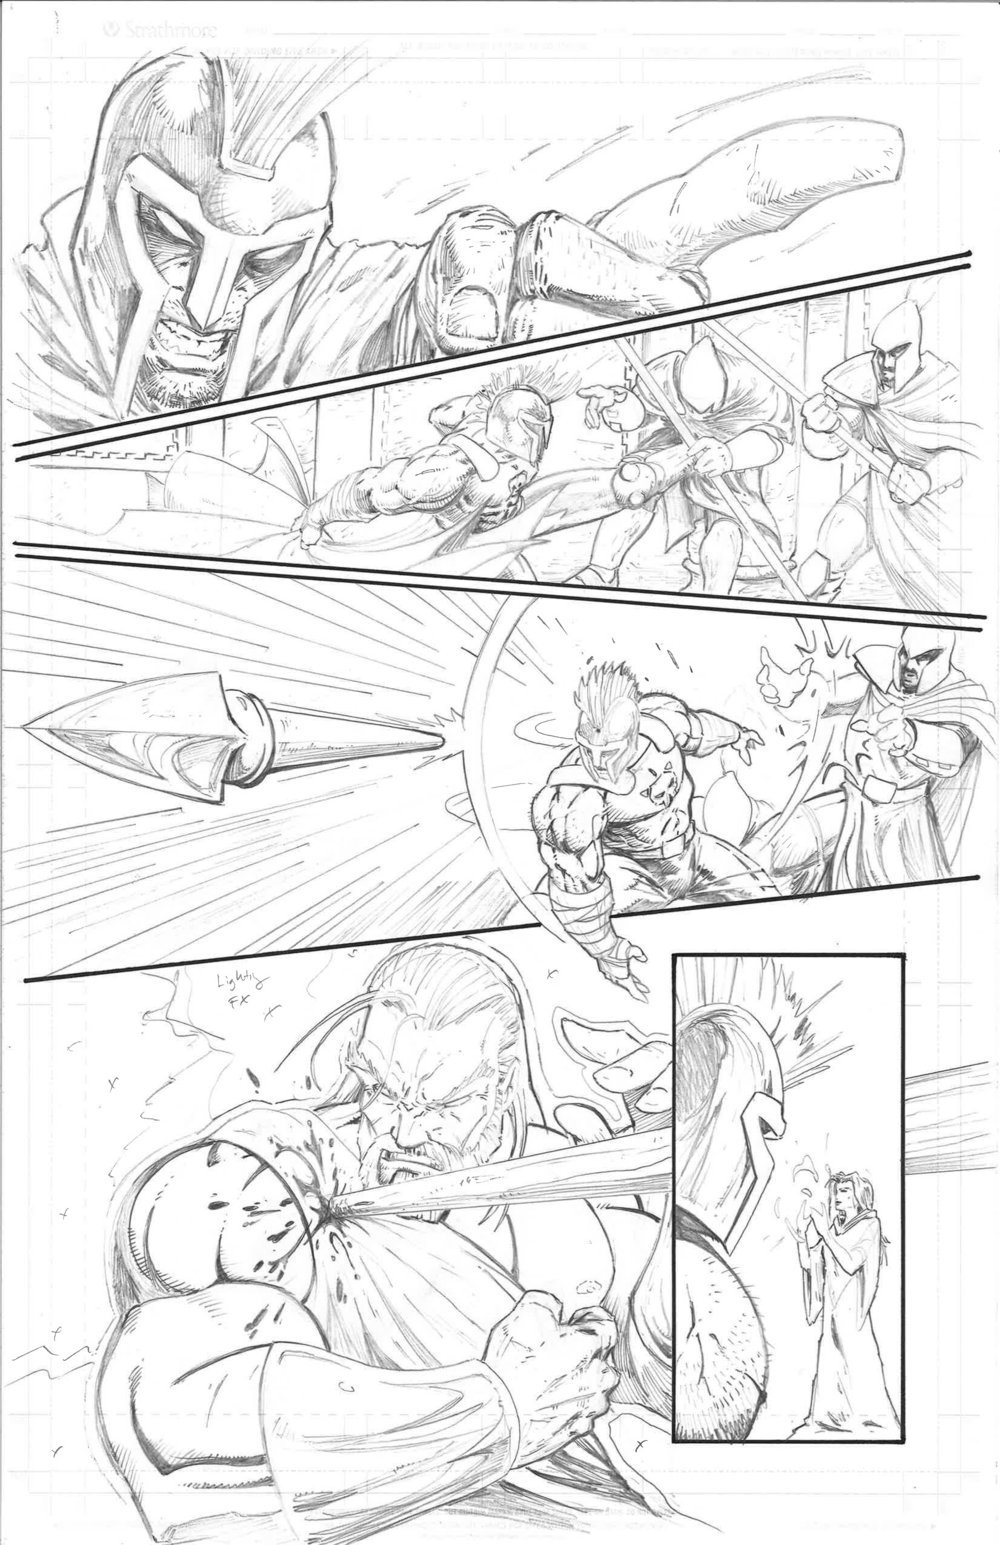 penciled pages_Page_09.jpg